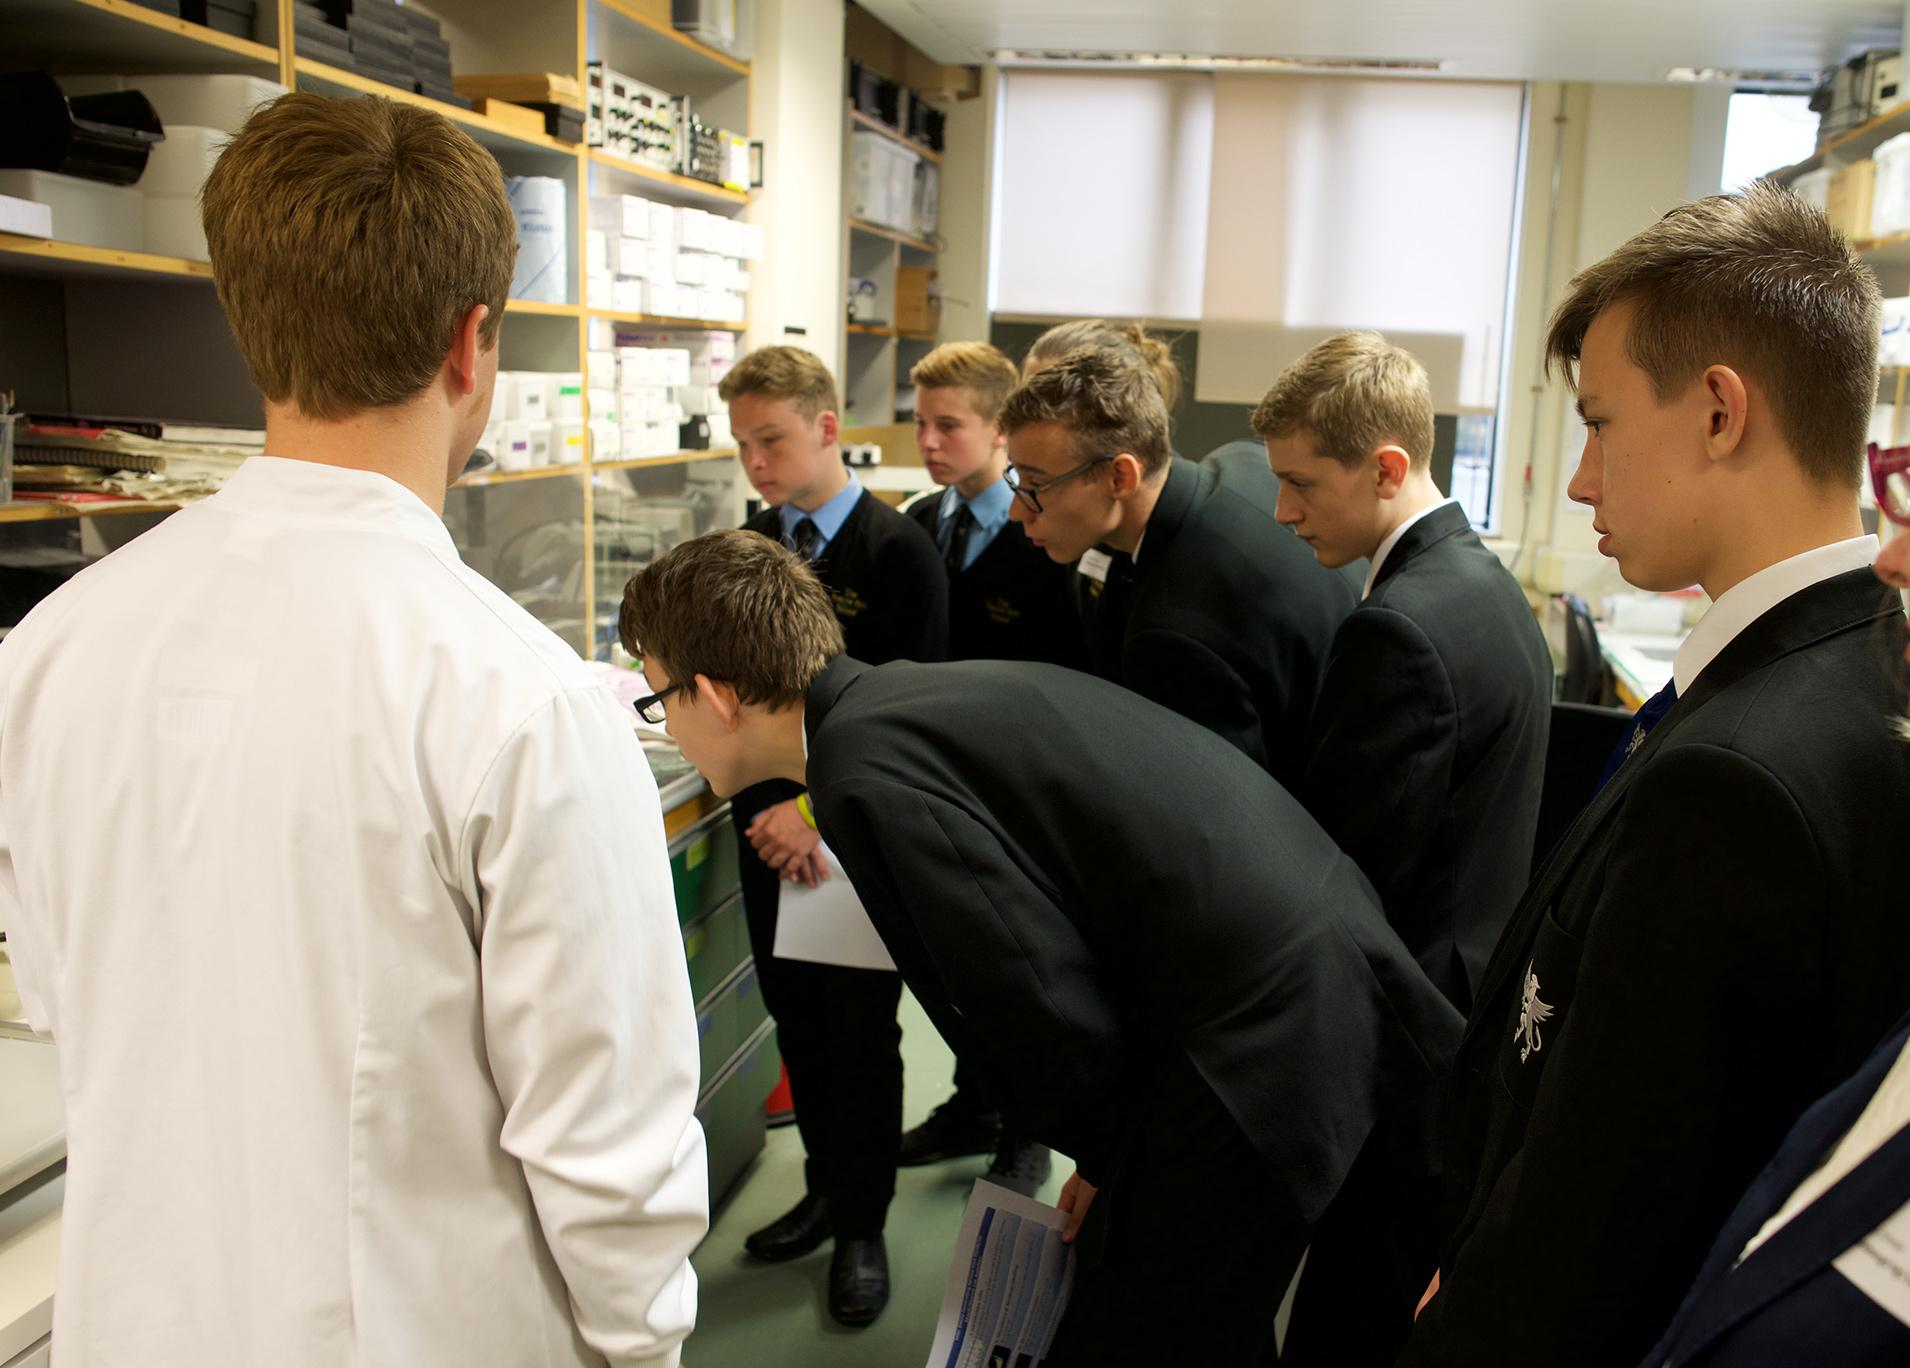 Pupils visited real working labs, where they could see for themselves some of the methods and technologies used in the Unit's research.